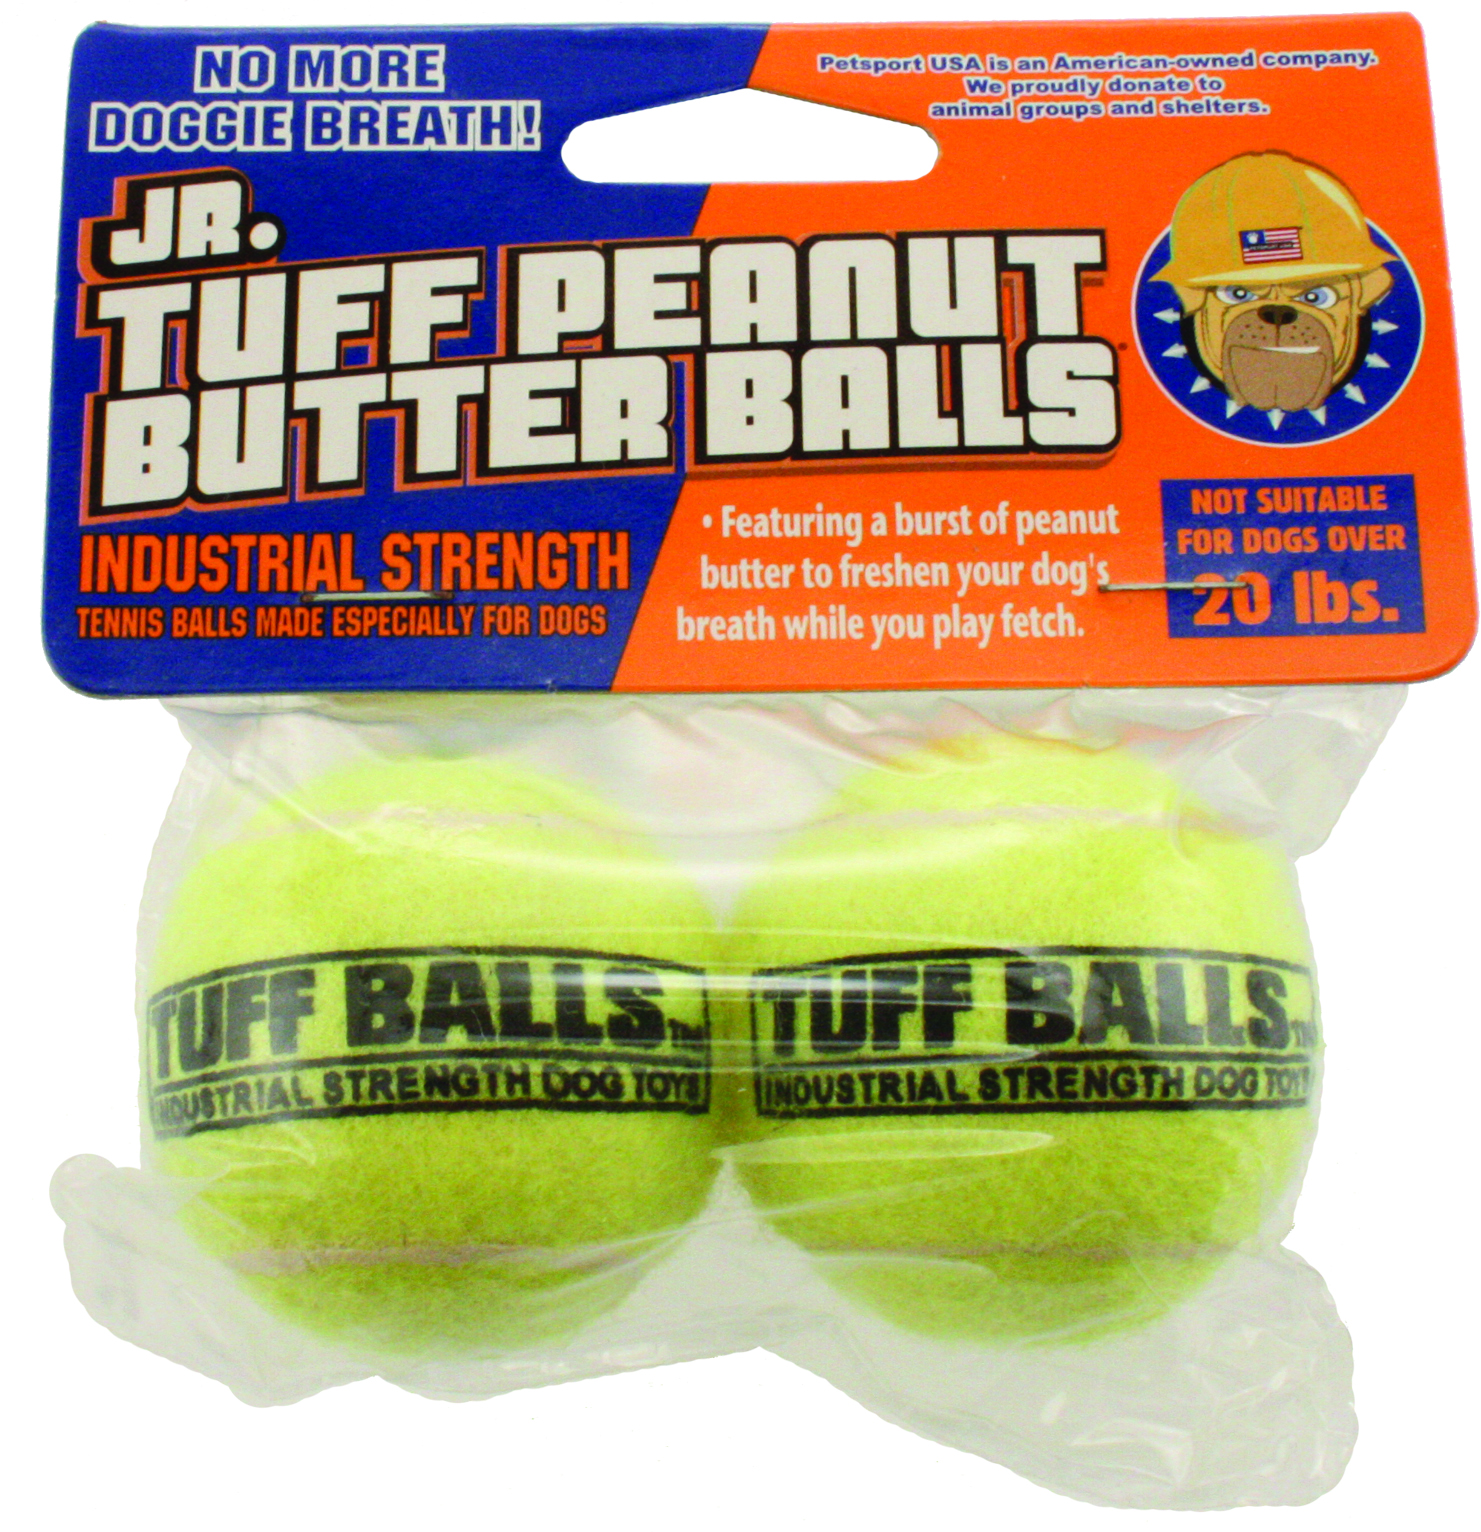 PETSPORT USA Jr Tuff Peanut Butter Balls